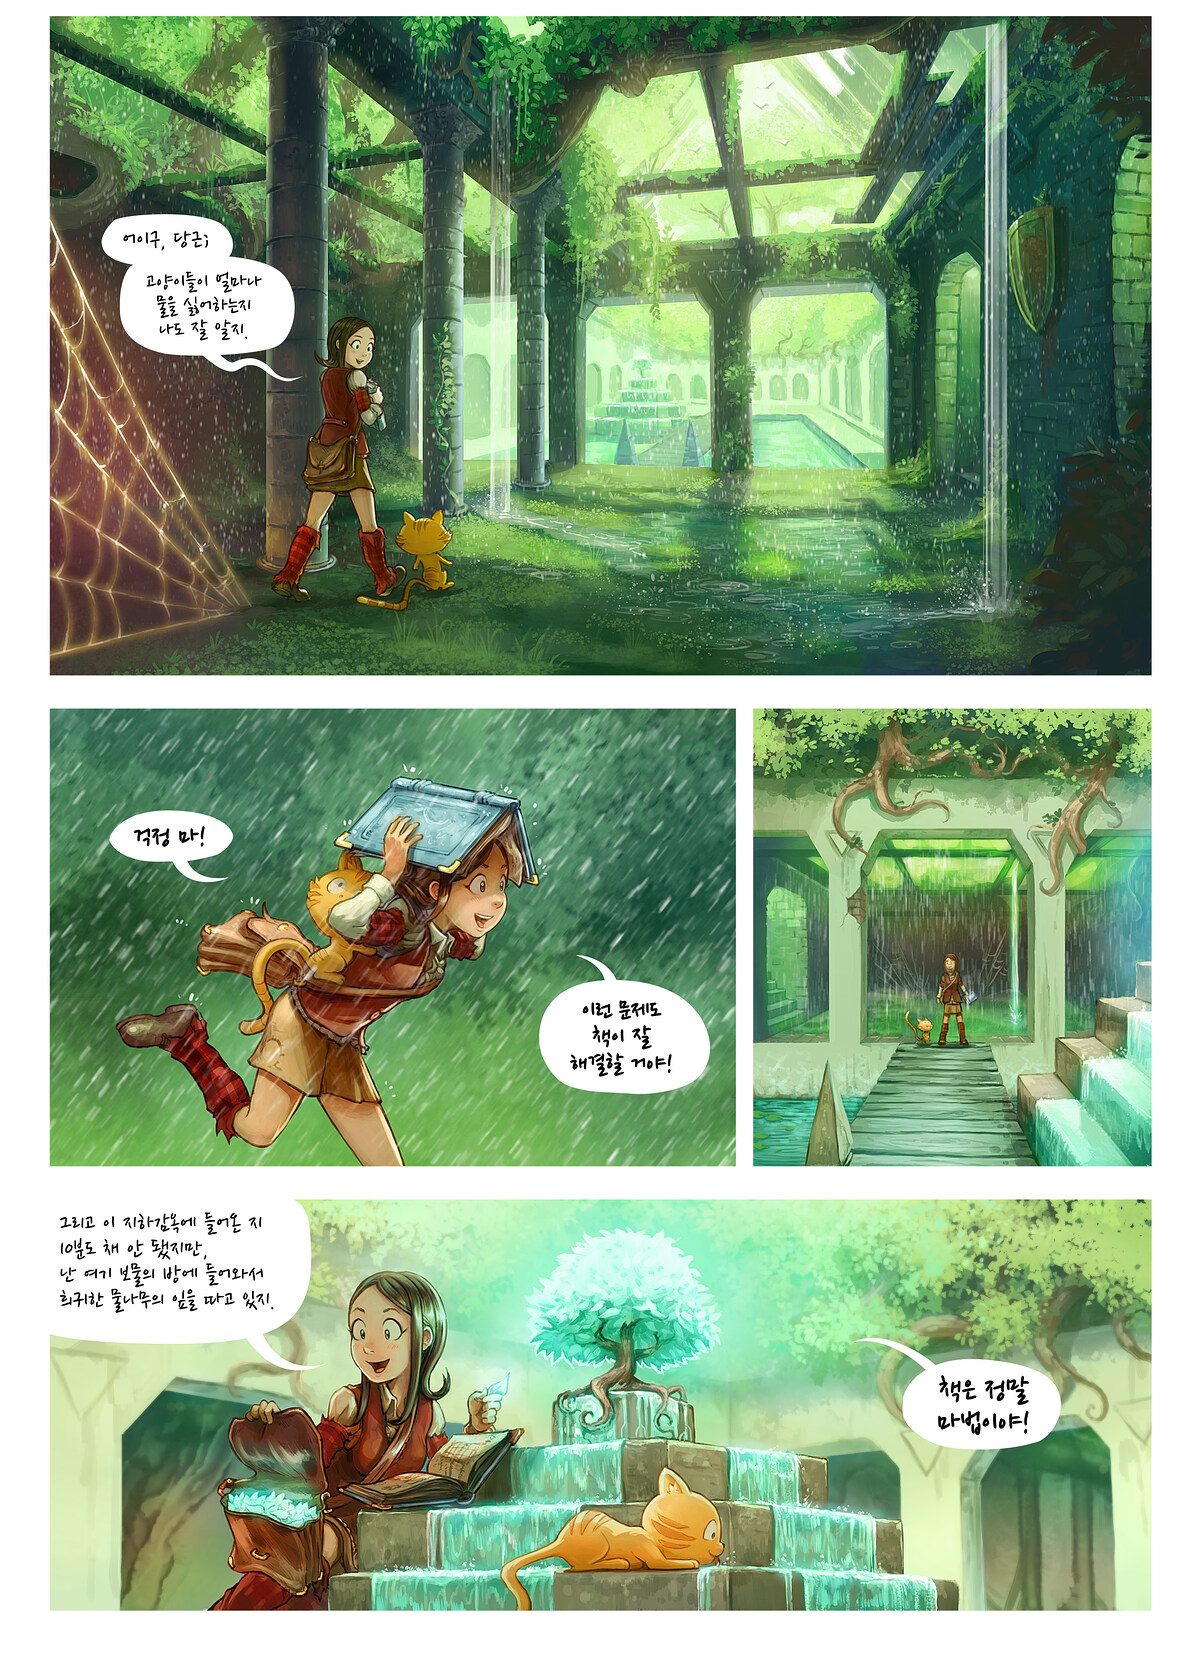 A webcomic page of Pepper&Carrot, 에피소드 26 [kr], 페이지 3